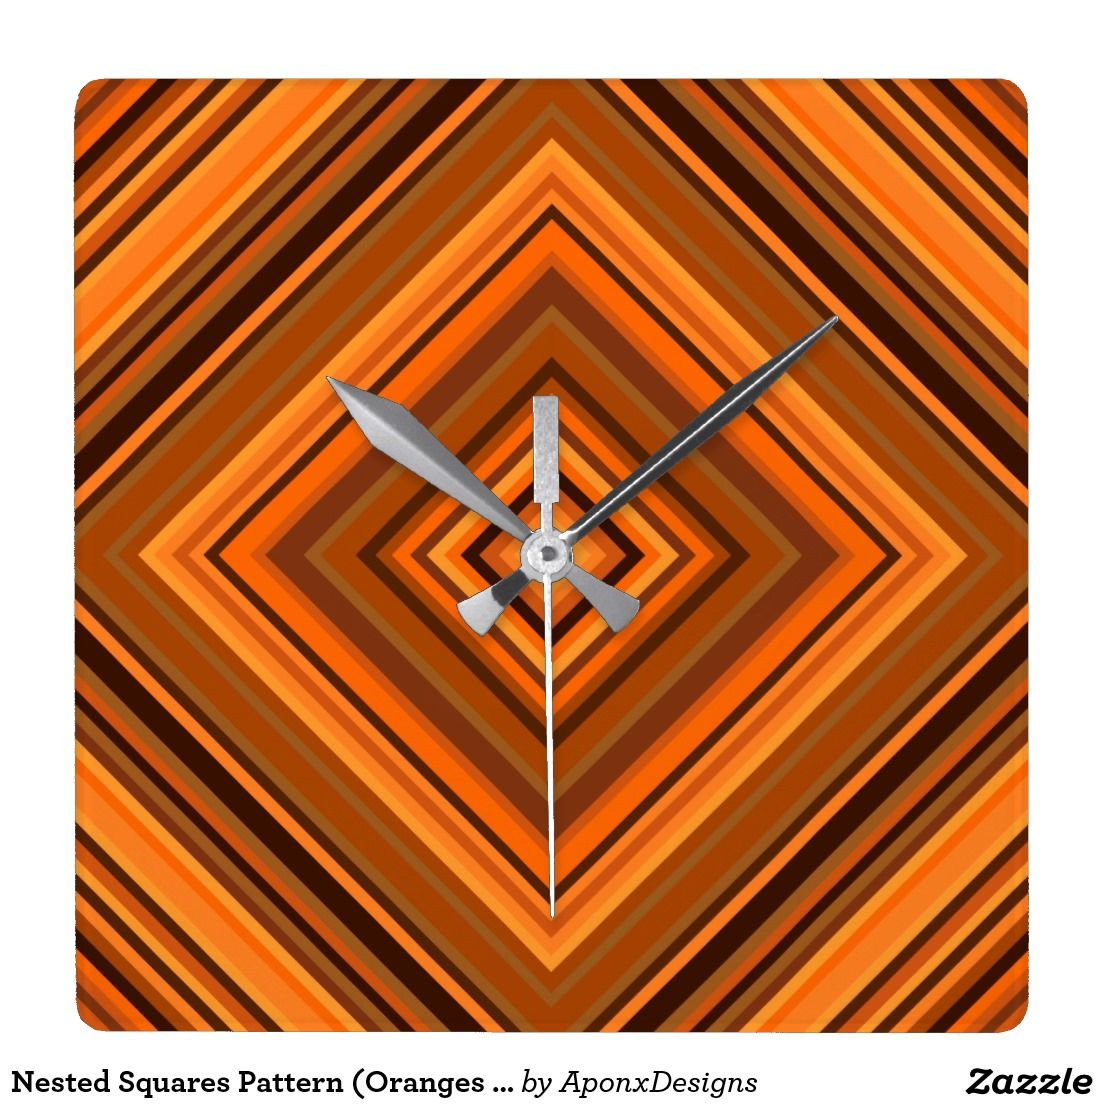 Clock With Nested Squares Pattern Colored With Oranges and Browns